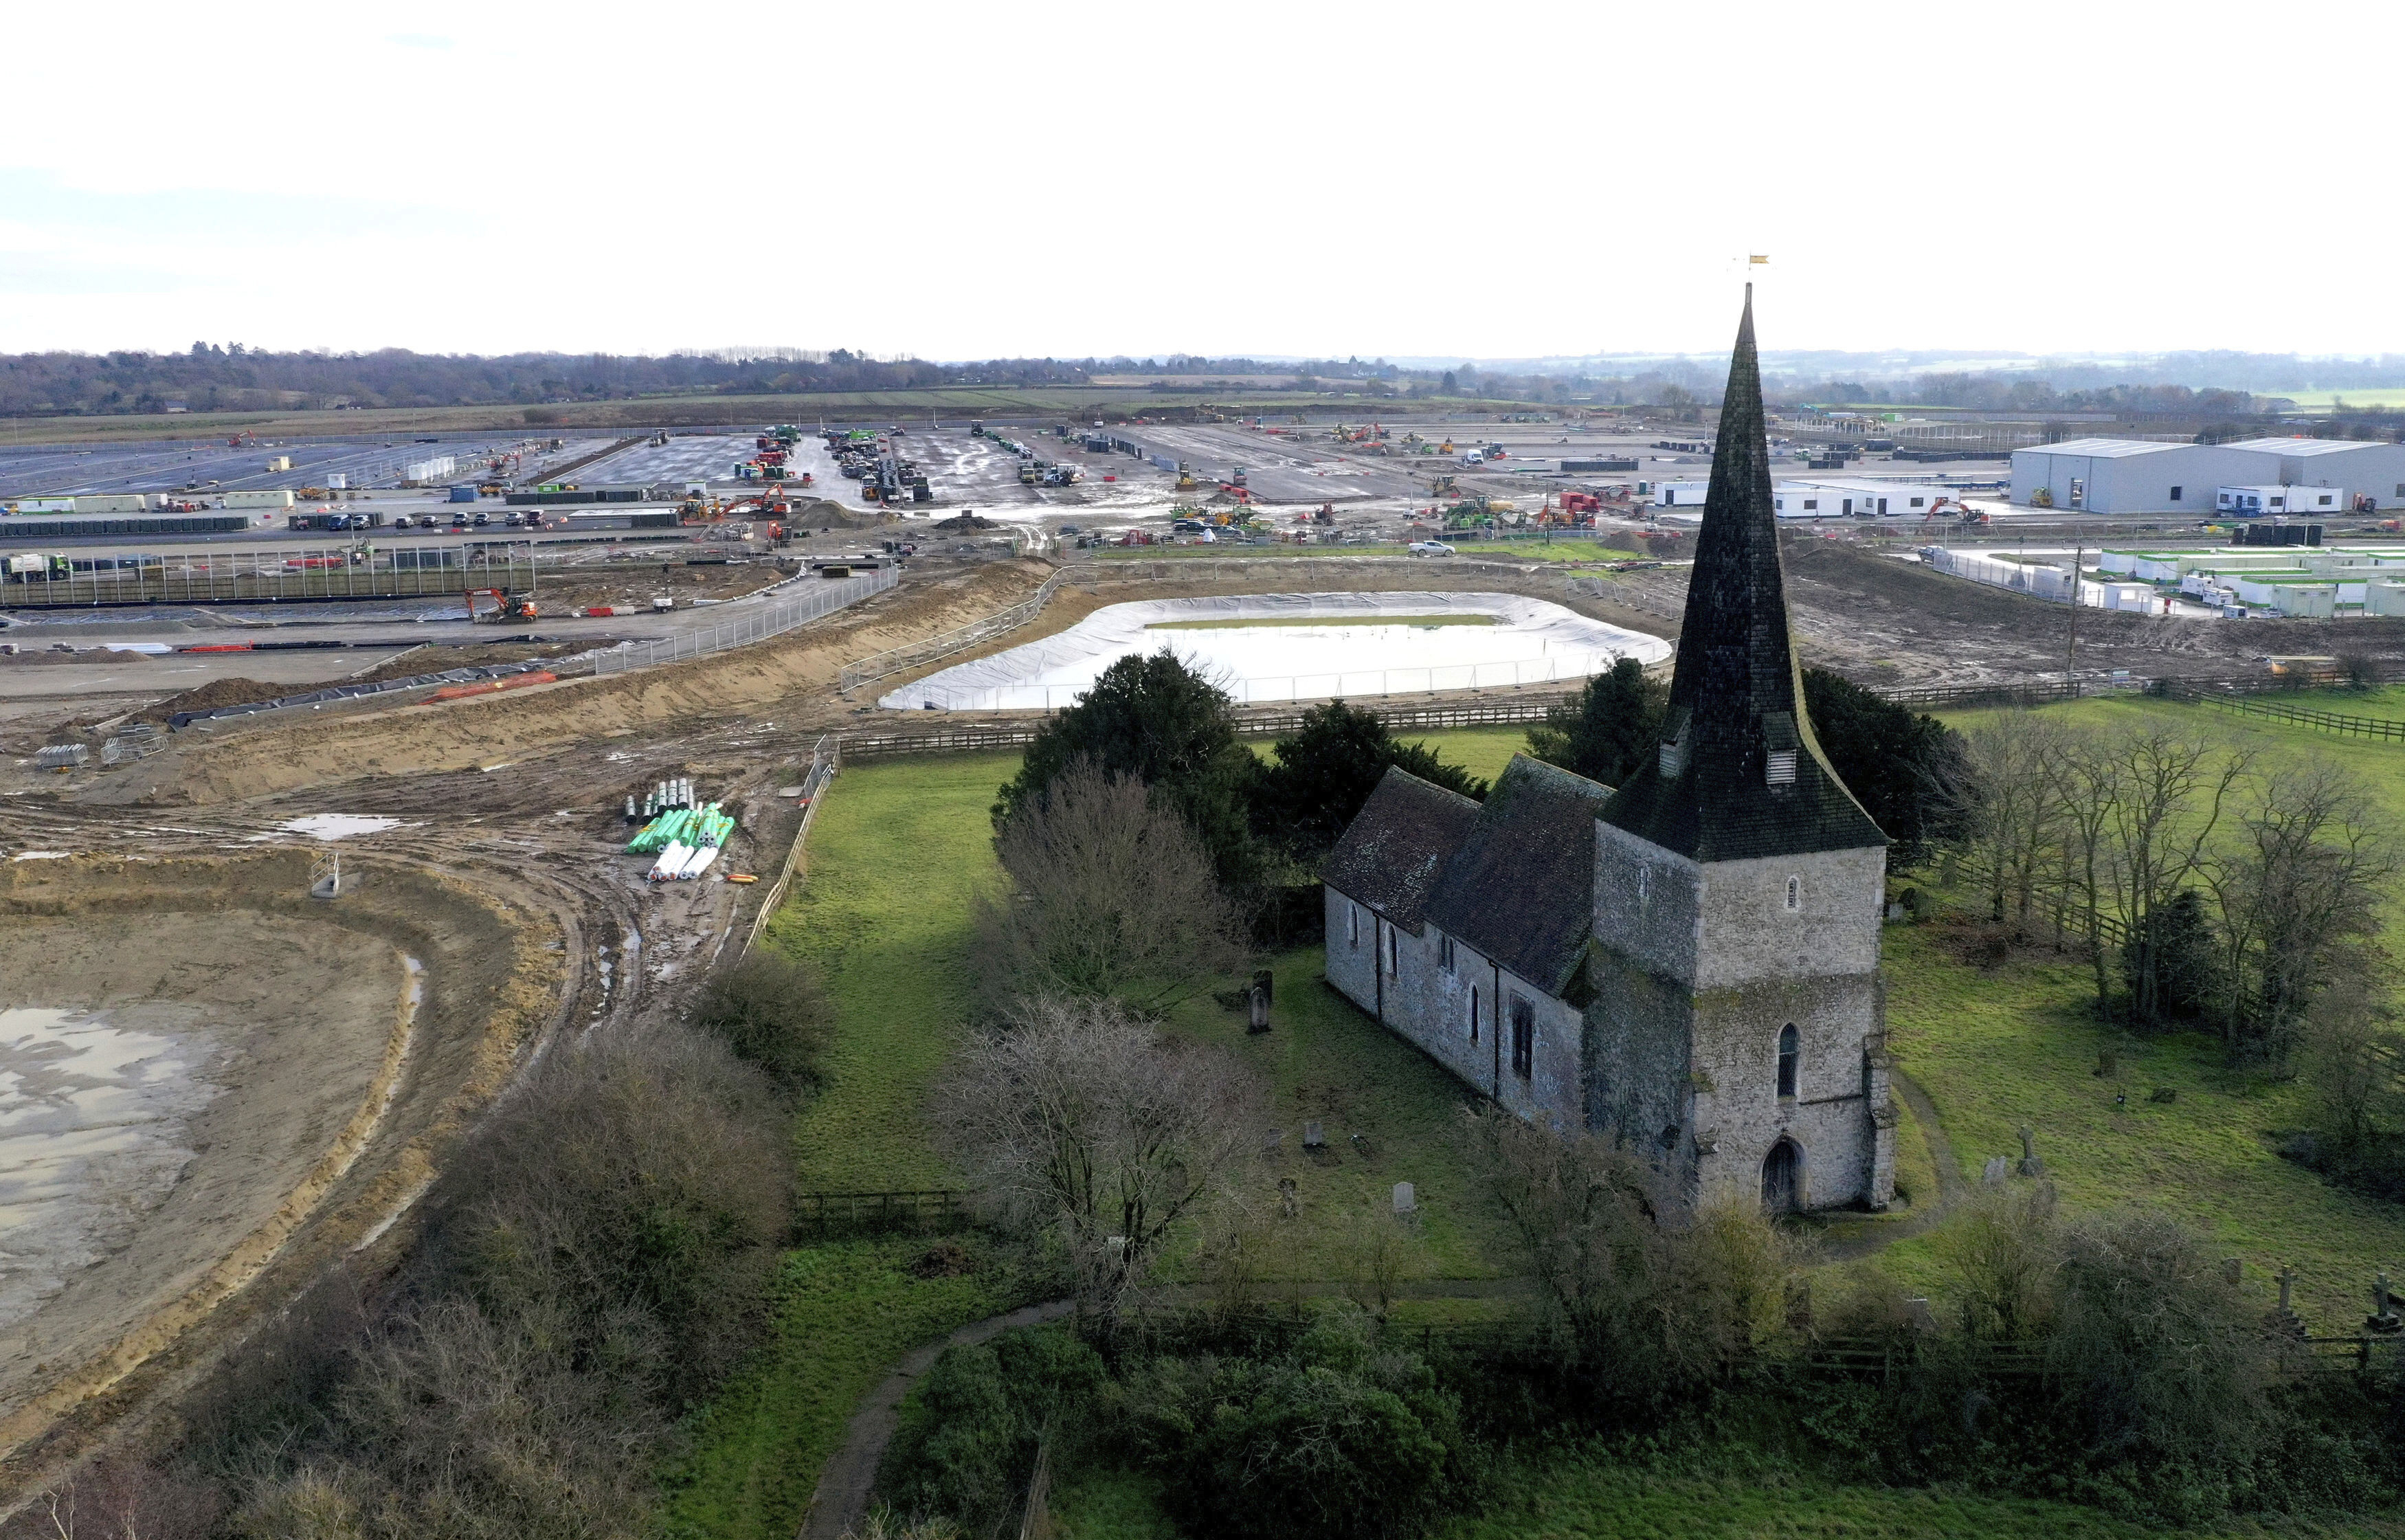 An aerial view of the thirteenth century St. Mary's Church as the British government develops a vast area into a post-Brexit lorry park, in Sevington, southern England, Sunday Nov. 6, 2020.  While diplomatic efforts to strike a Brexit trade deal continue between Britain and the European bloc, preparations are underway to cope with anticipated goods vehicle cross border transport delays. (Gareth Fuller/PA via AP)